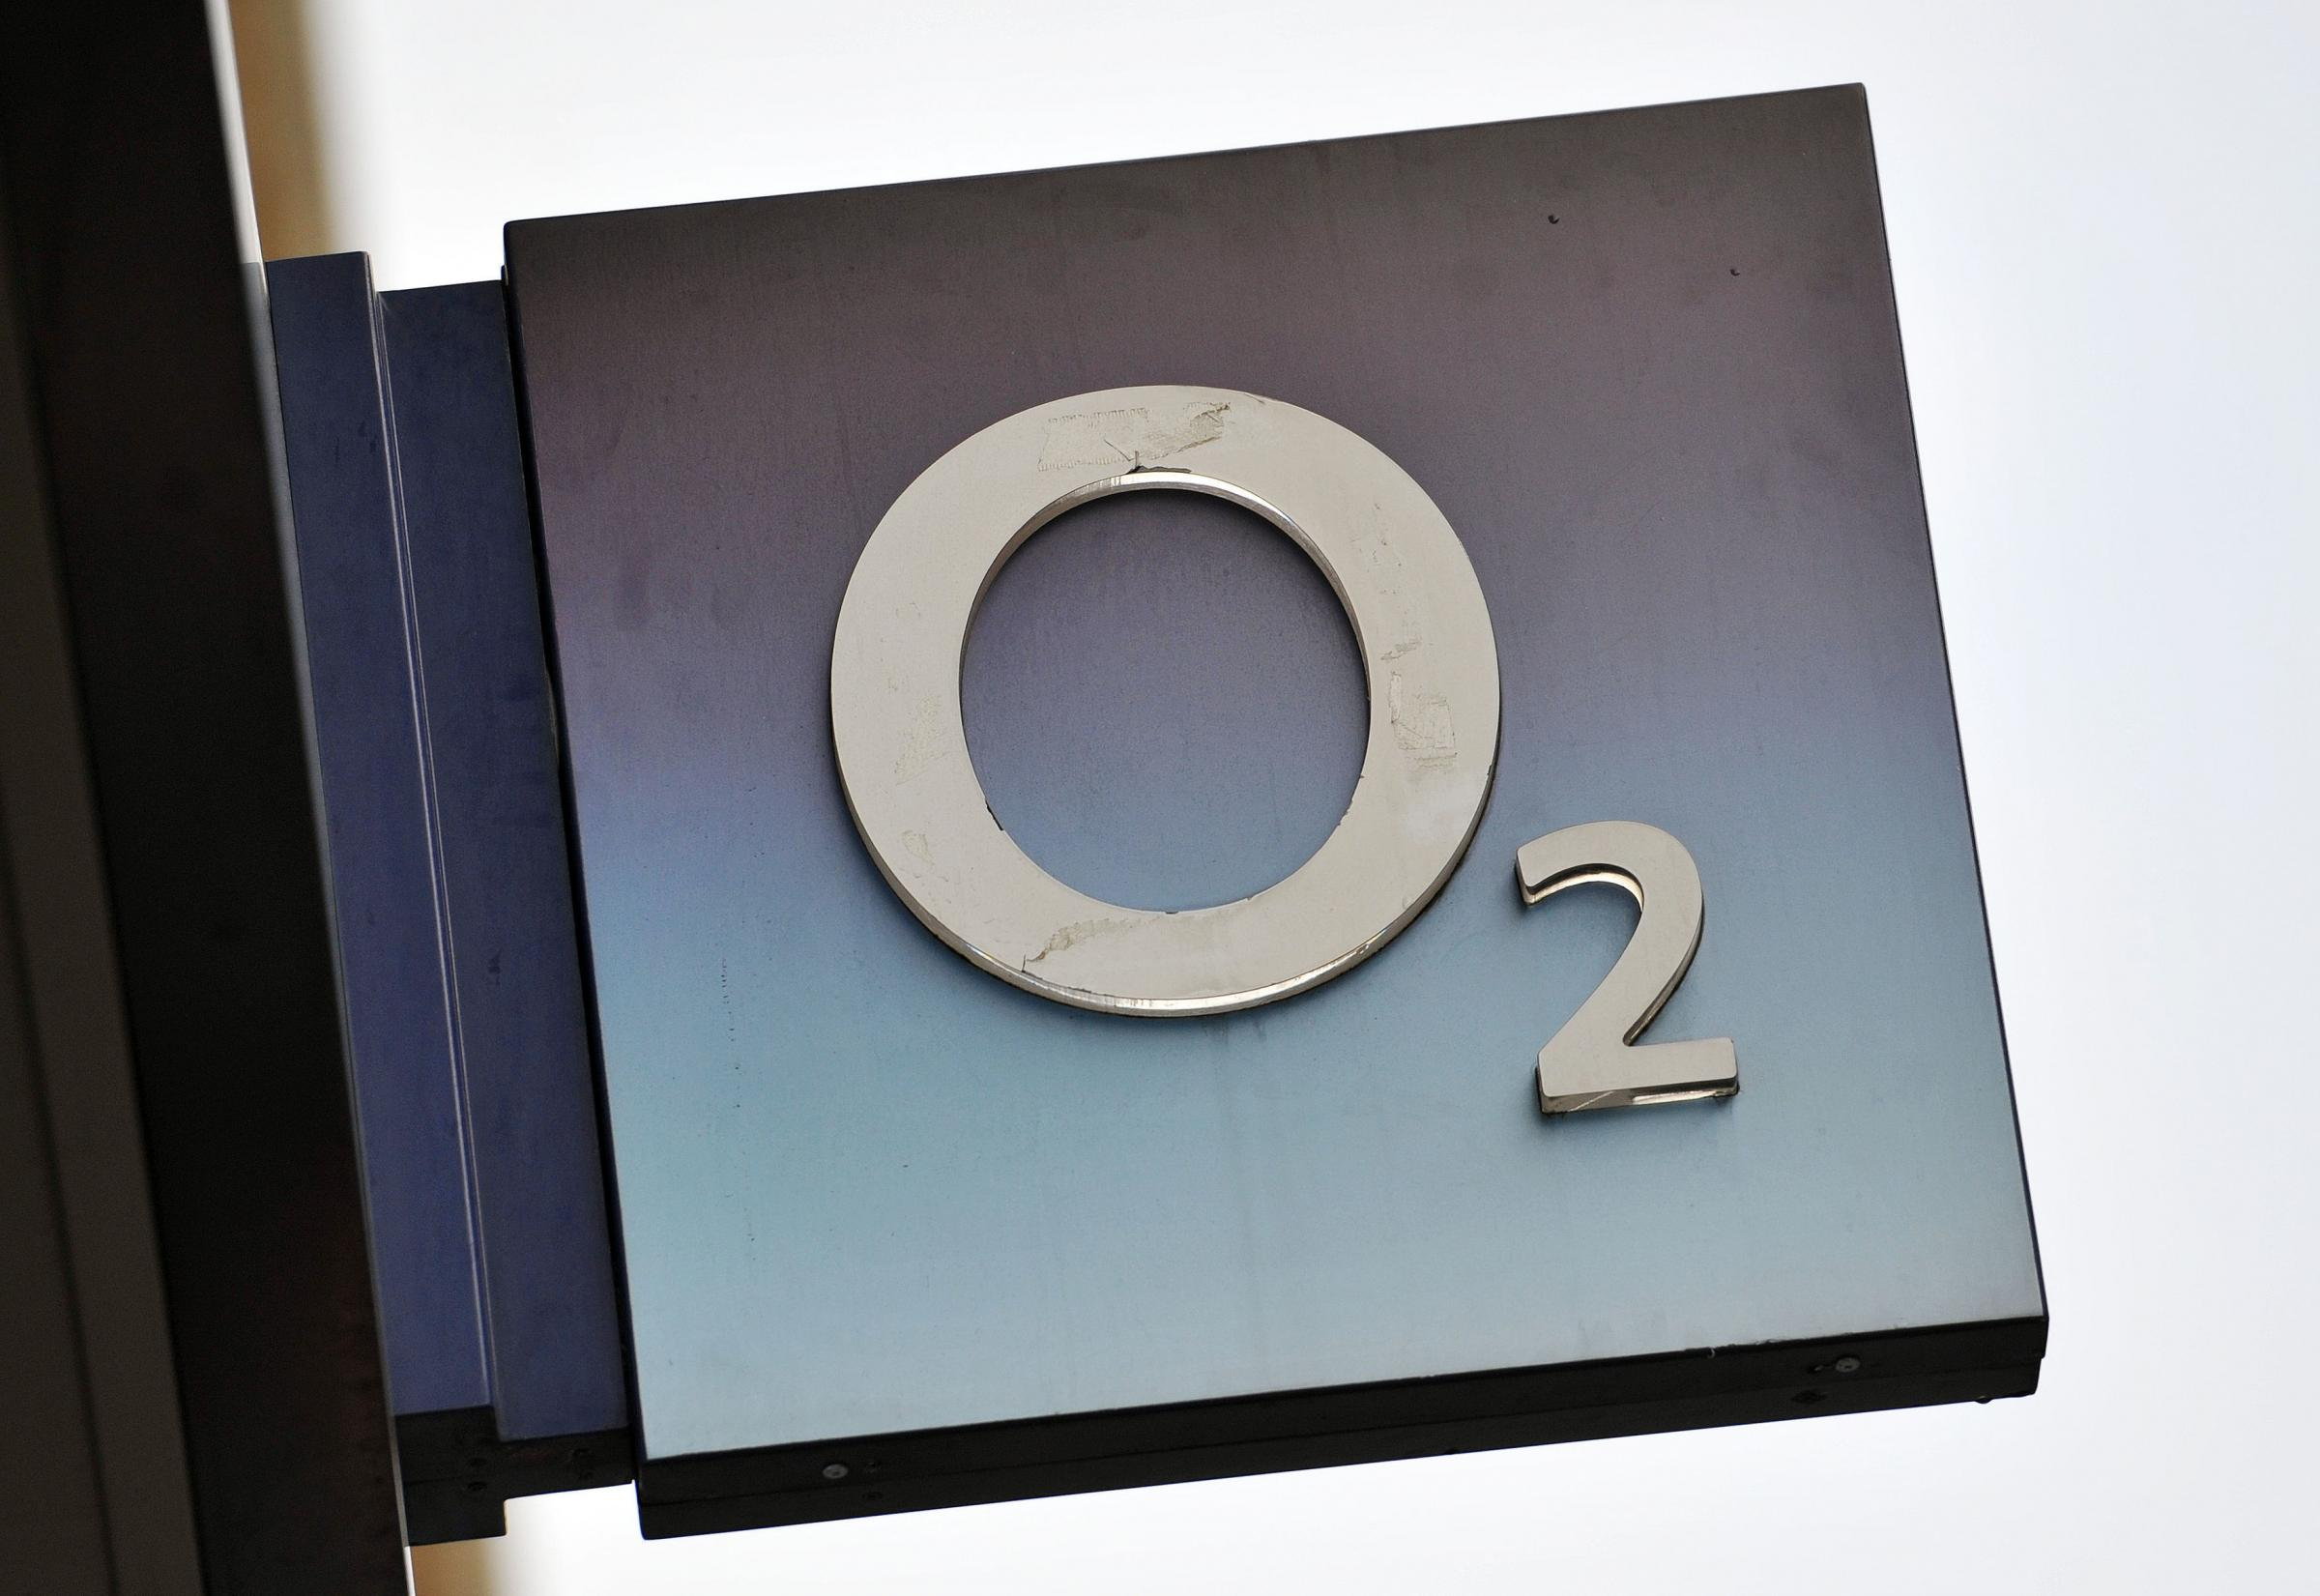 O2 says its services have been restored after a technical fault left millions of customers unable to get online